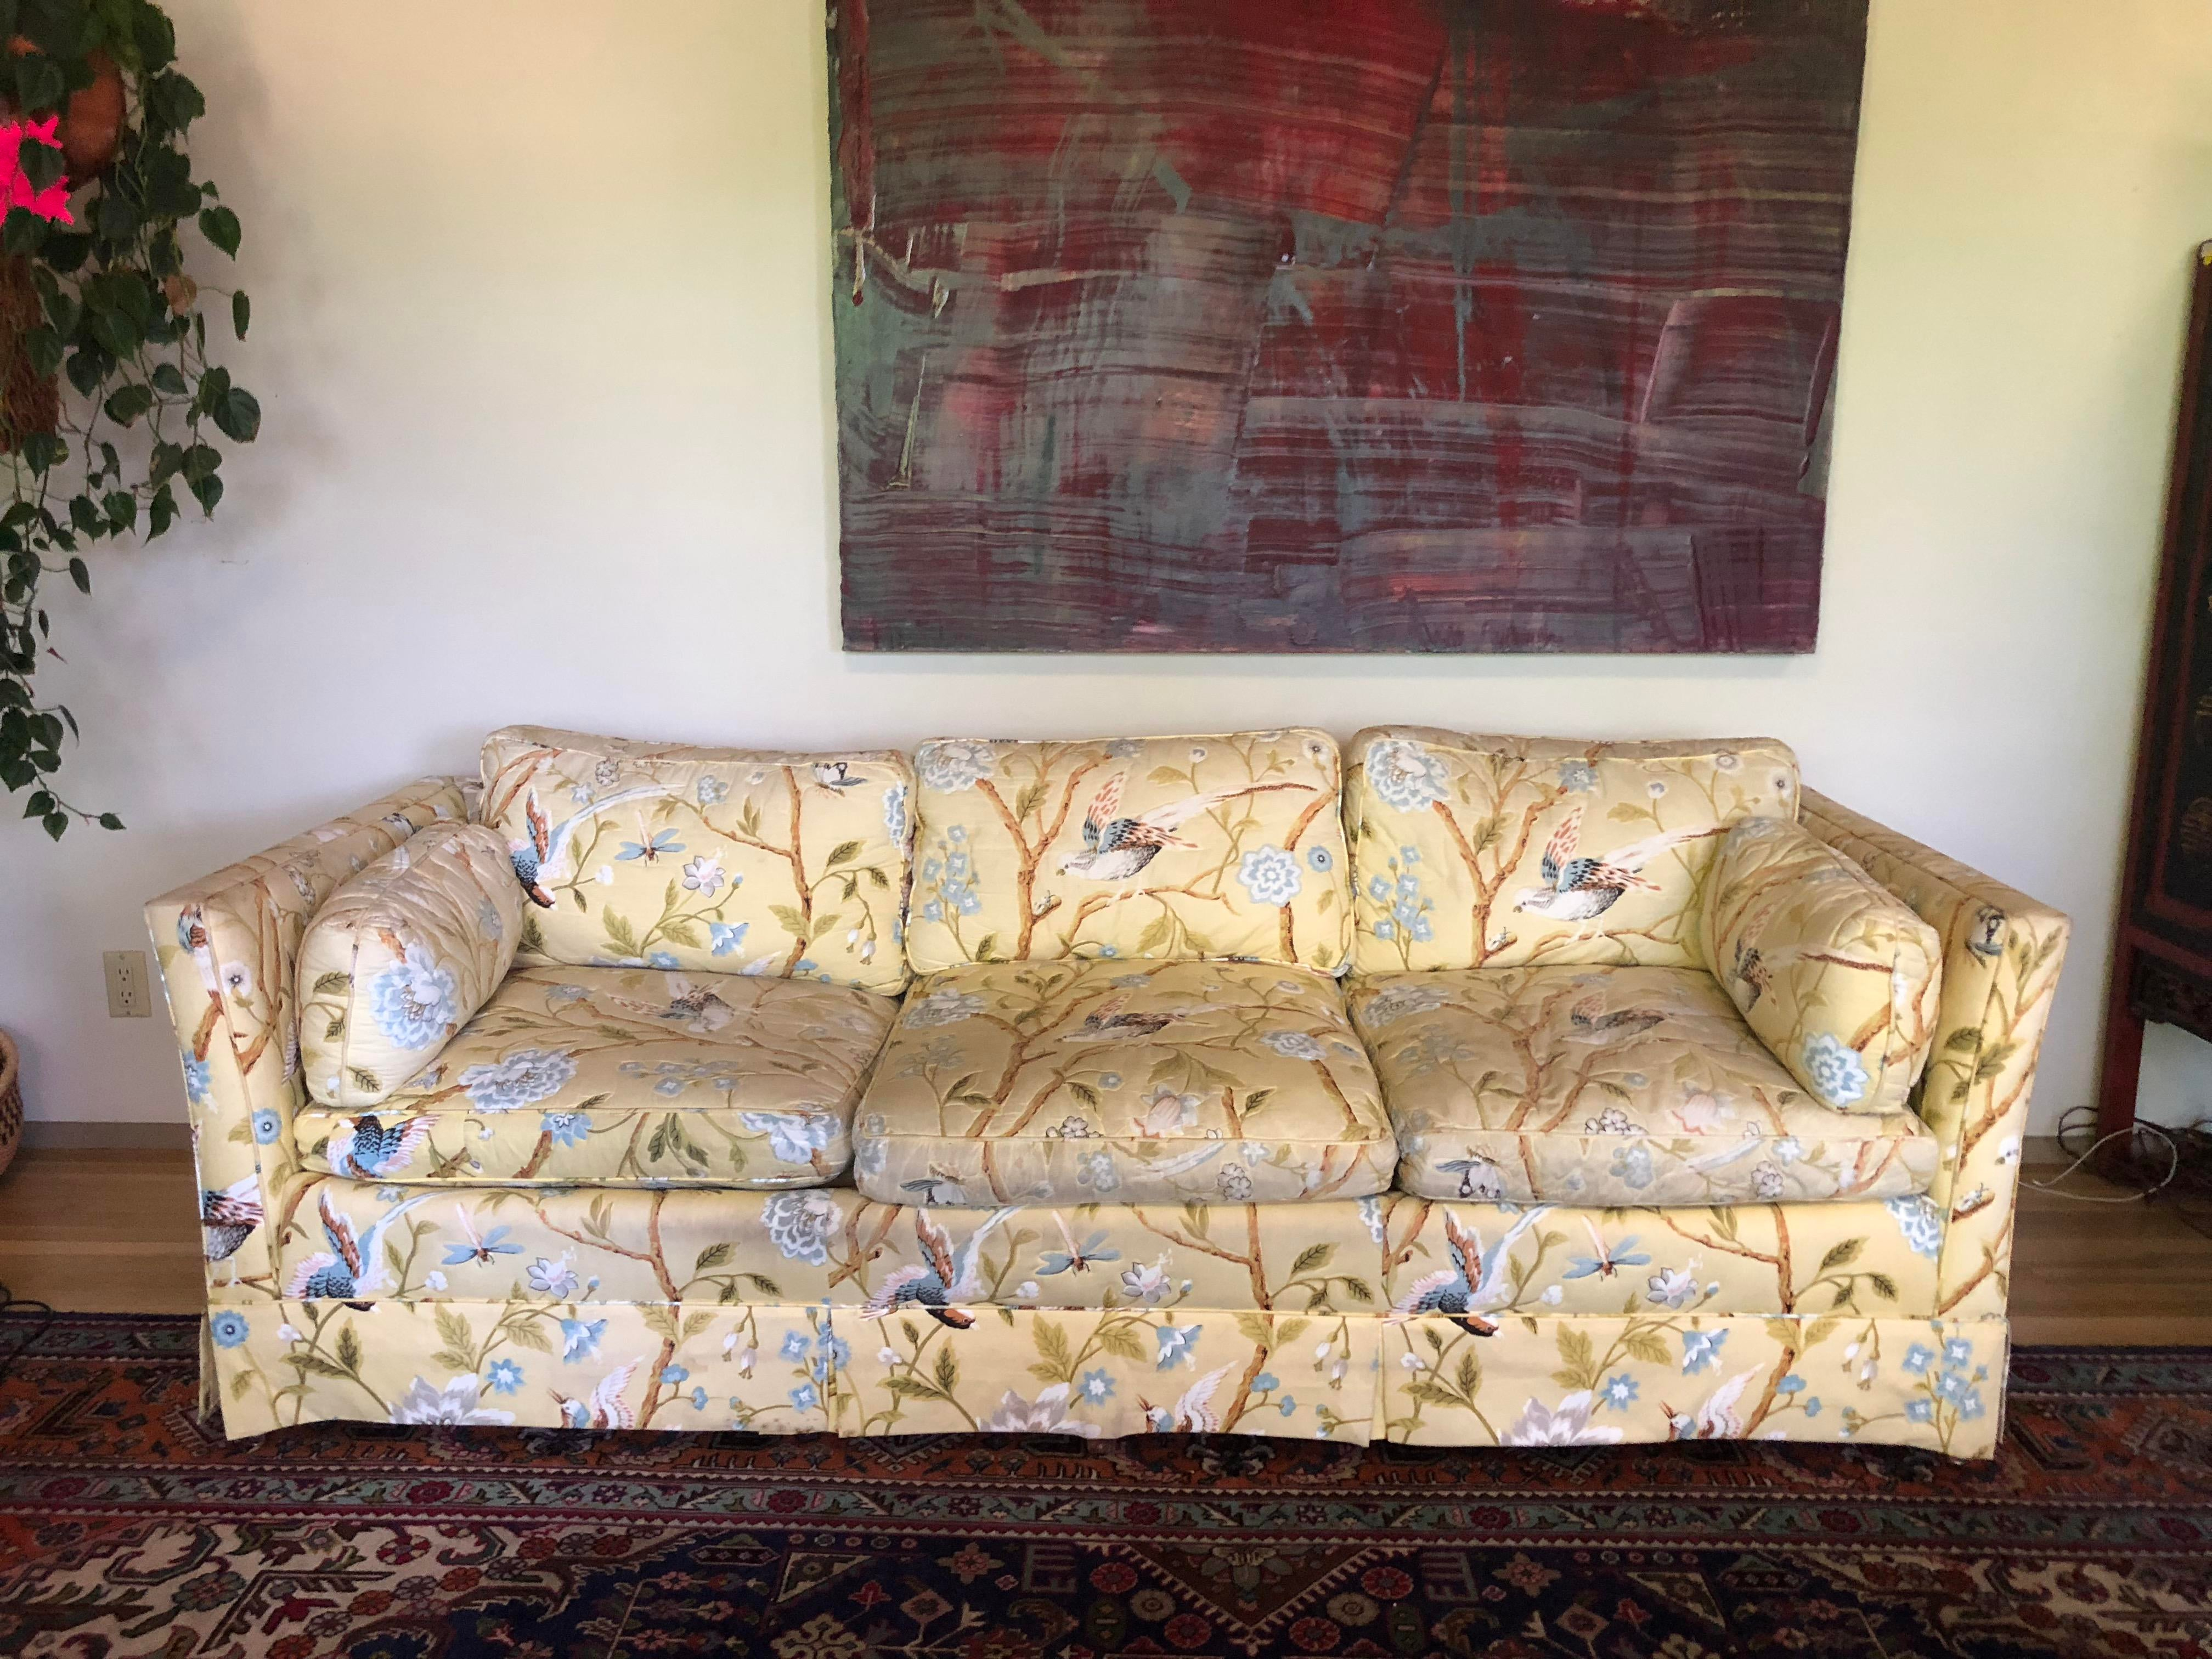 Merveilleux 1980s Vintage Baker Yellow Floral With Birds Sofa For Sale   Image 5 Of 5